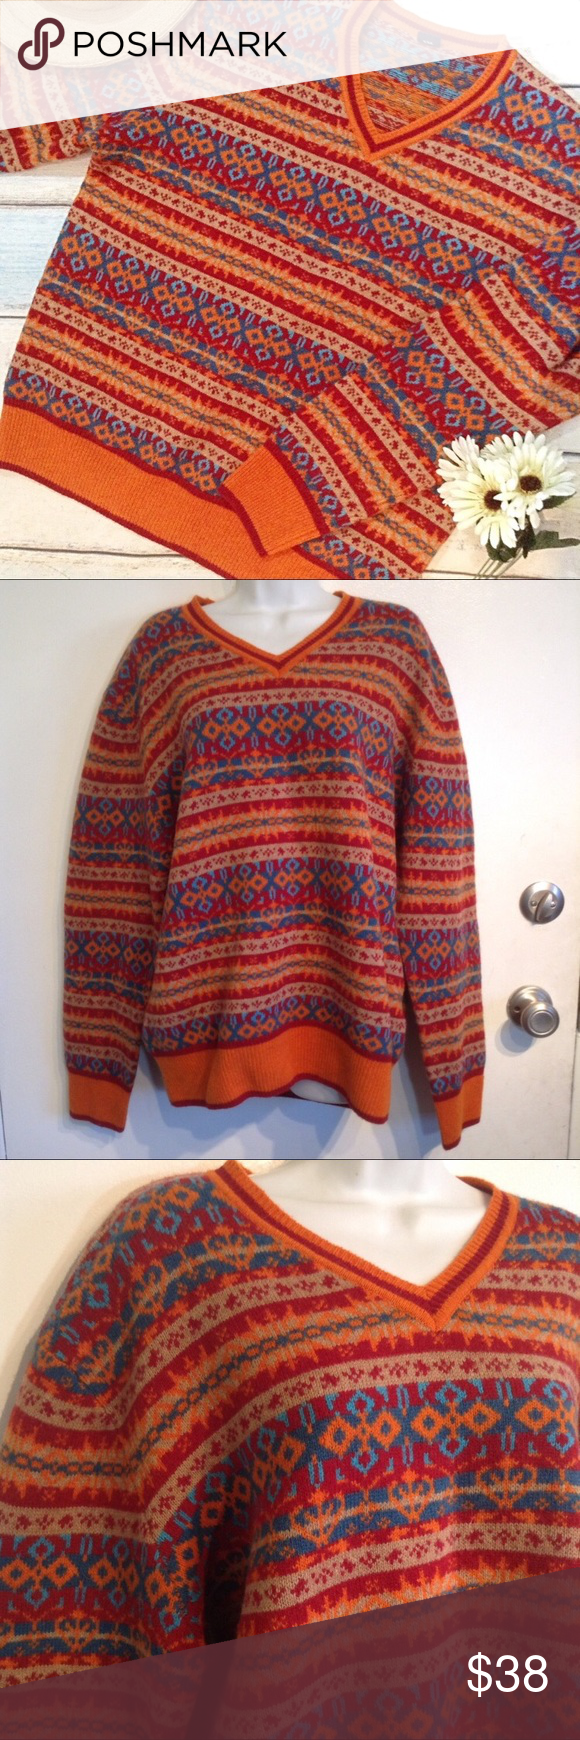 McNEAL CLOTHING CO Carlisle Lambswool Sweater McNeal